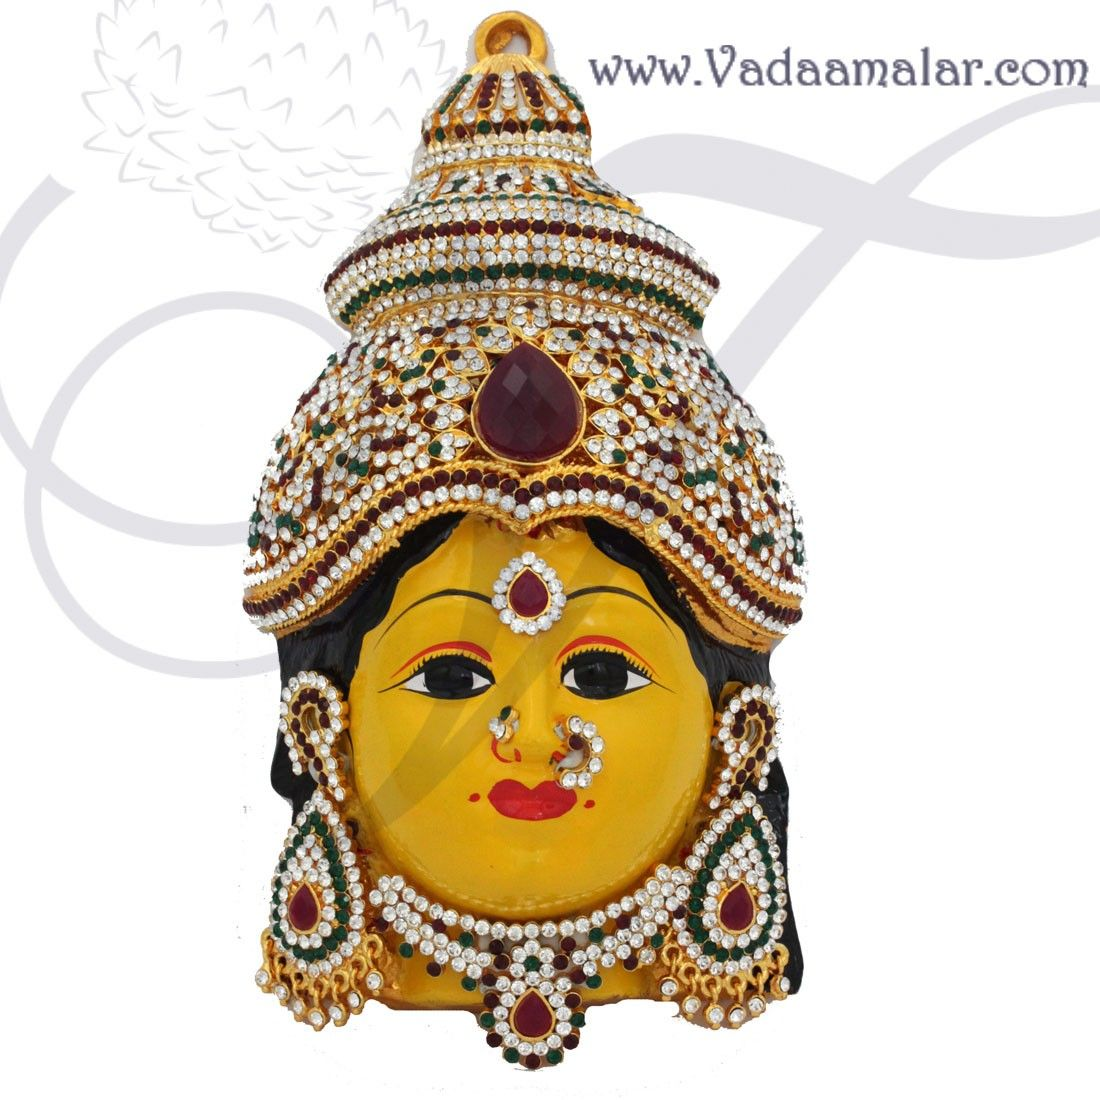 How To Decorate A Mask Extraordinary Thugil Online Store Goddess Lakshmi Mask Vara Laksmi Face With Inspiration Design